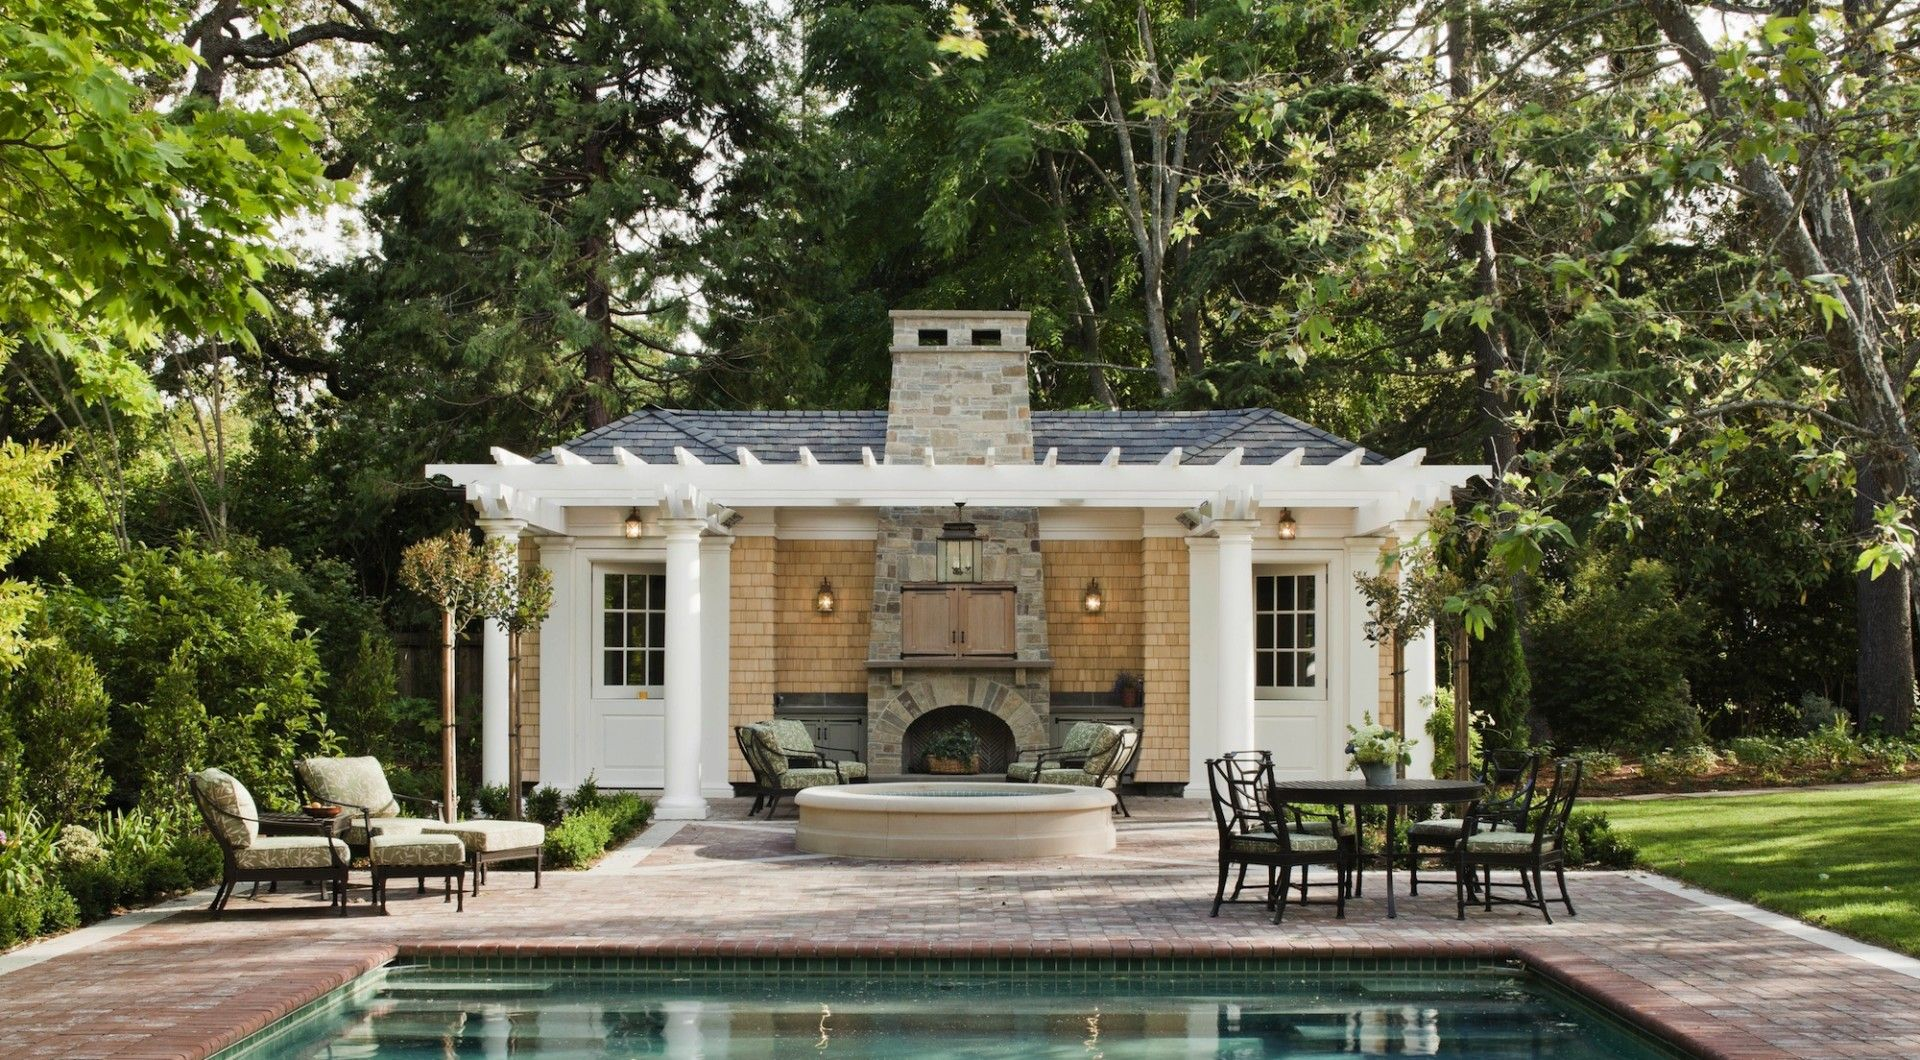 Mesmerizing Pool House Plan Interior Home Design Family Room Of Pool on design a front yard, design a screened in porch, design a gazebo, design a covered deck, design a storage shed,